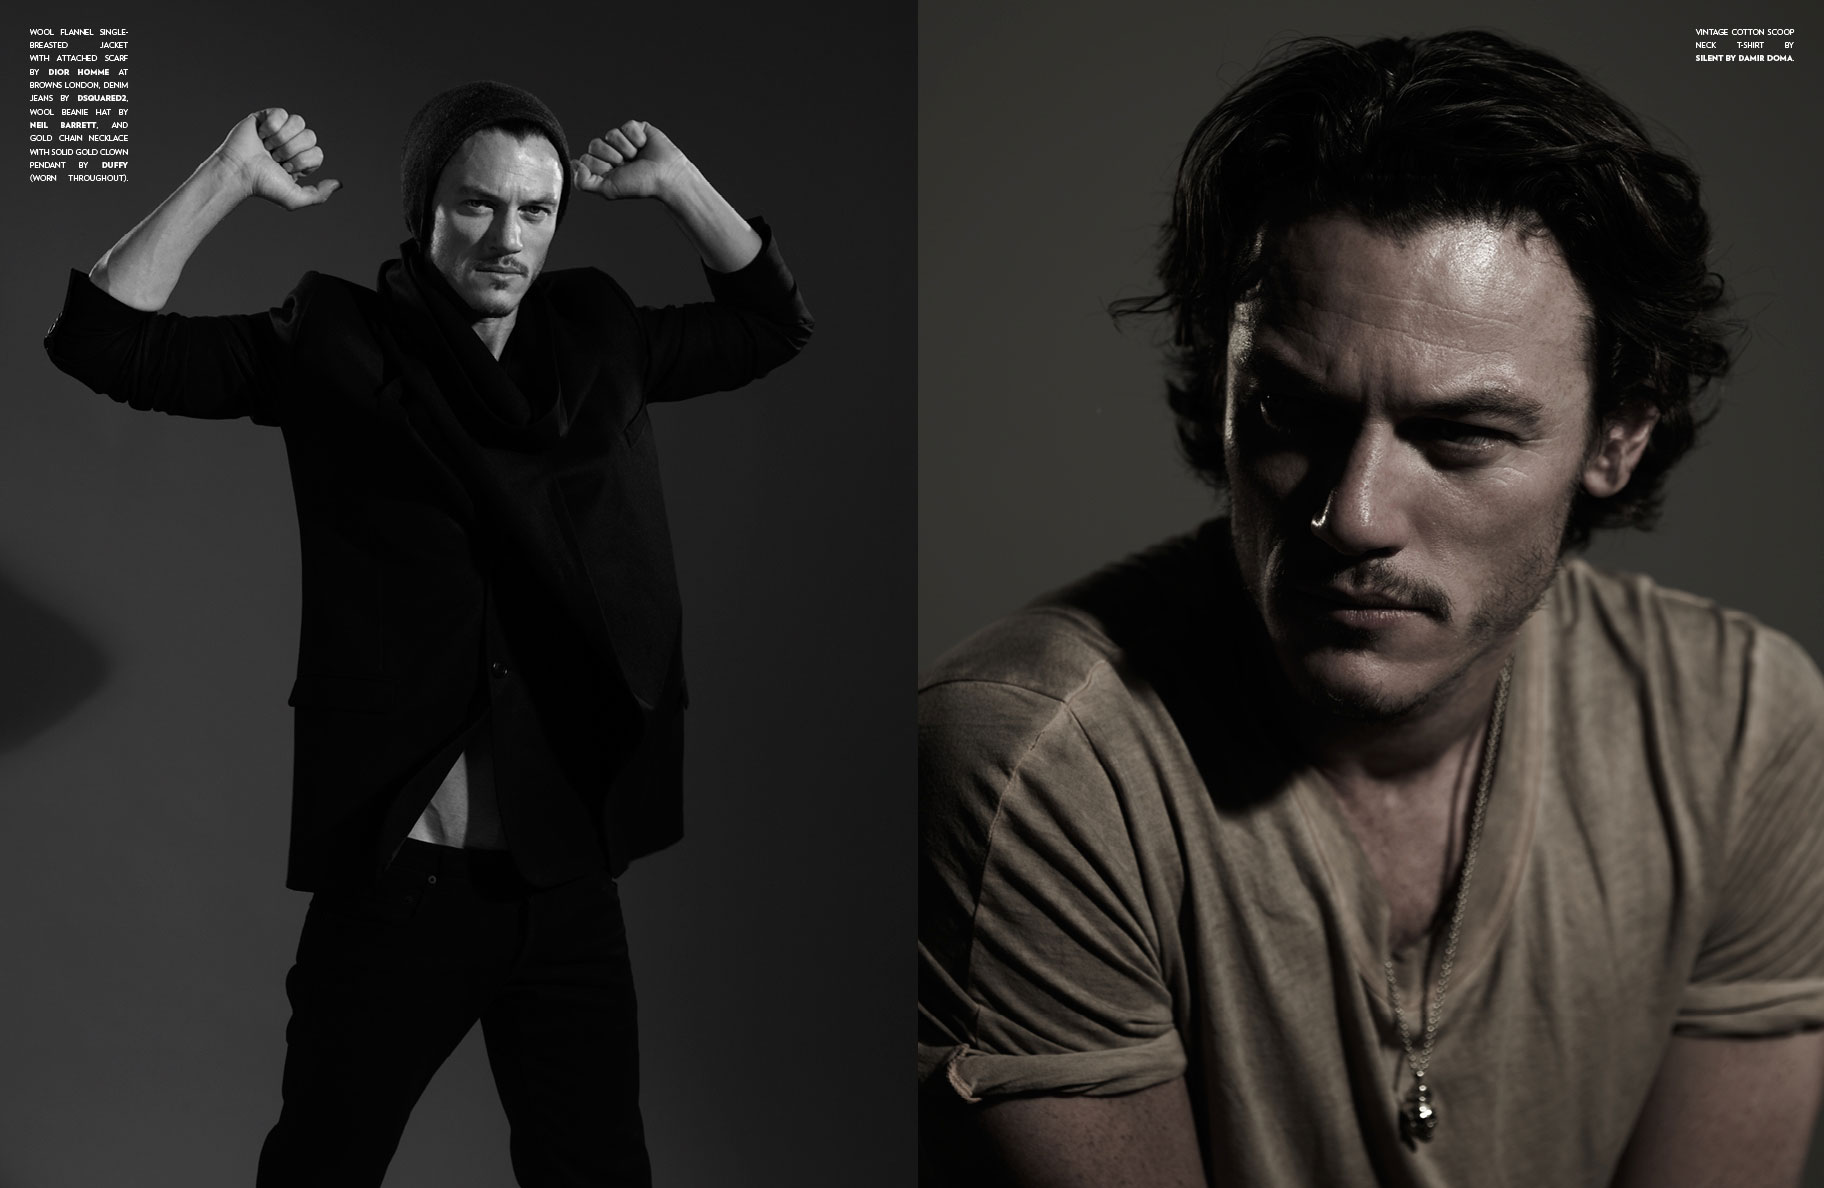 actor Luke Evans hd desktop wallpaper screensaver background 1824x1188